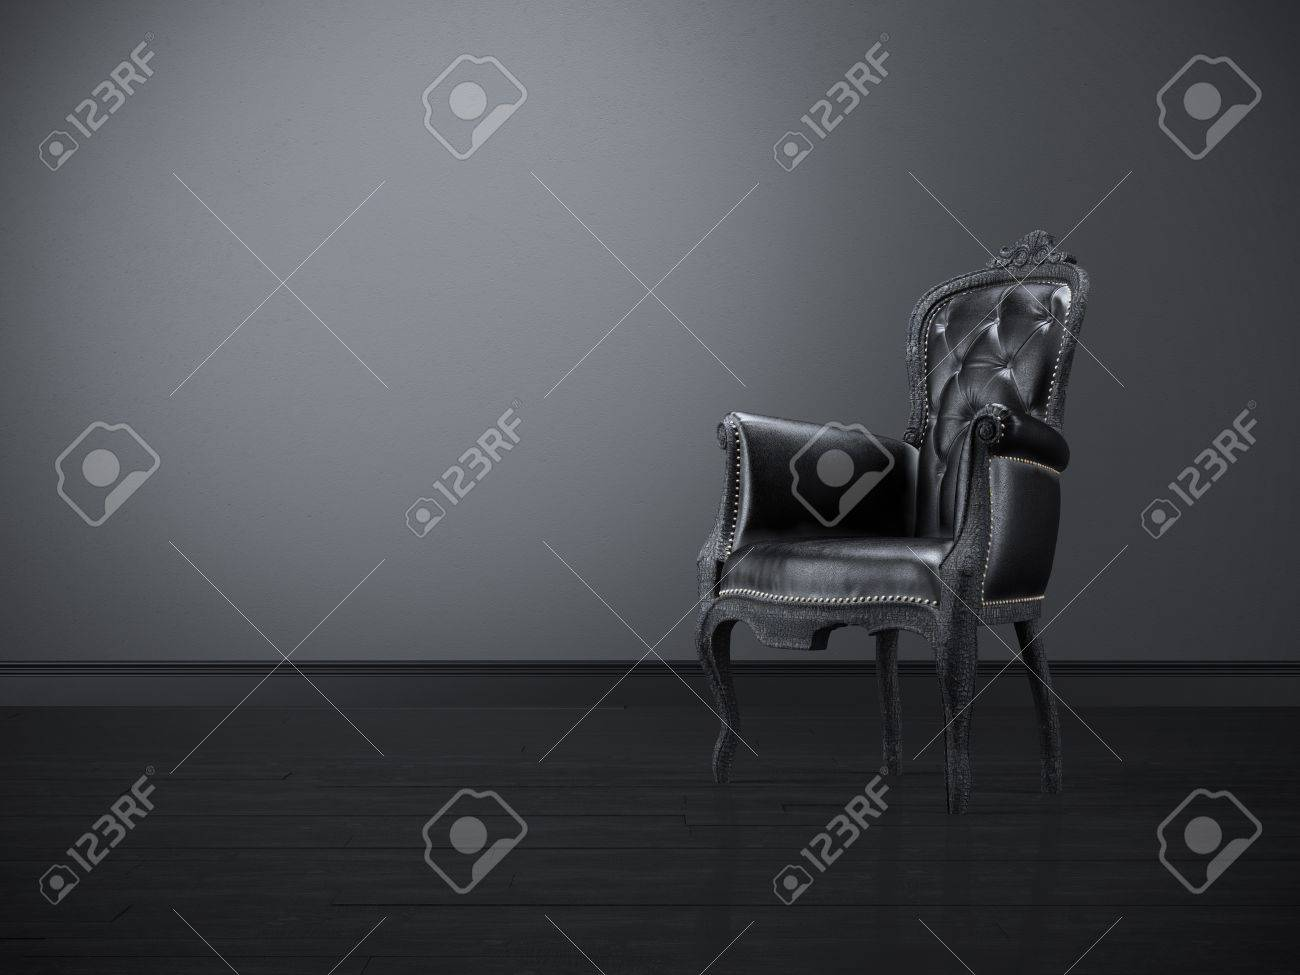 Black and white chair photography - Stock Photo Vintage Black Chair In The Dark Room